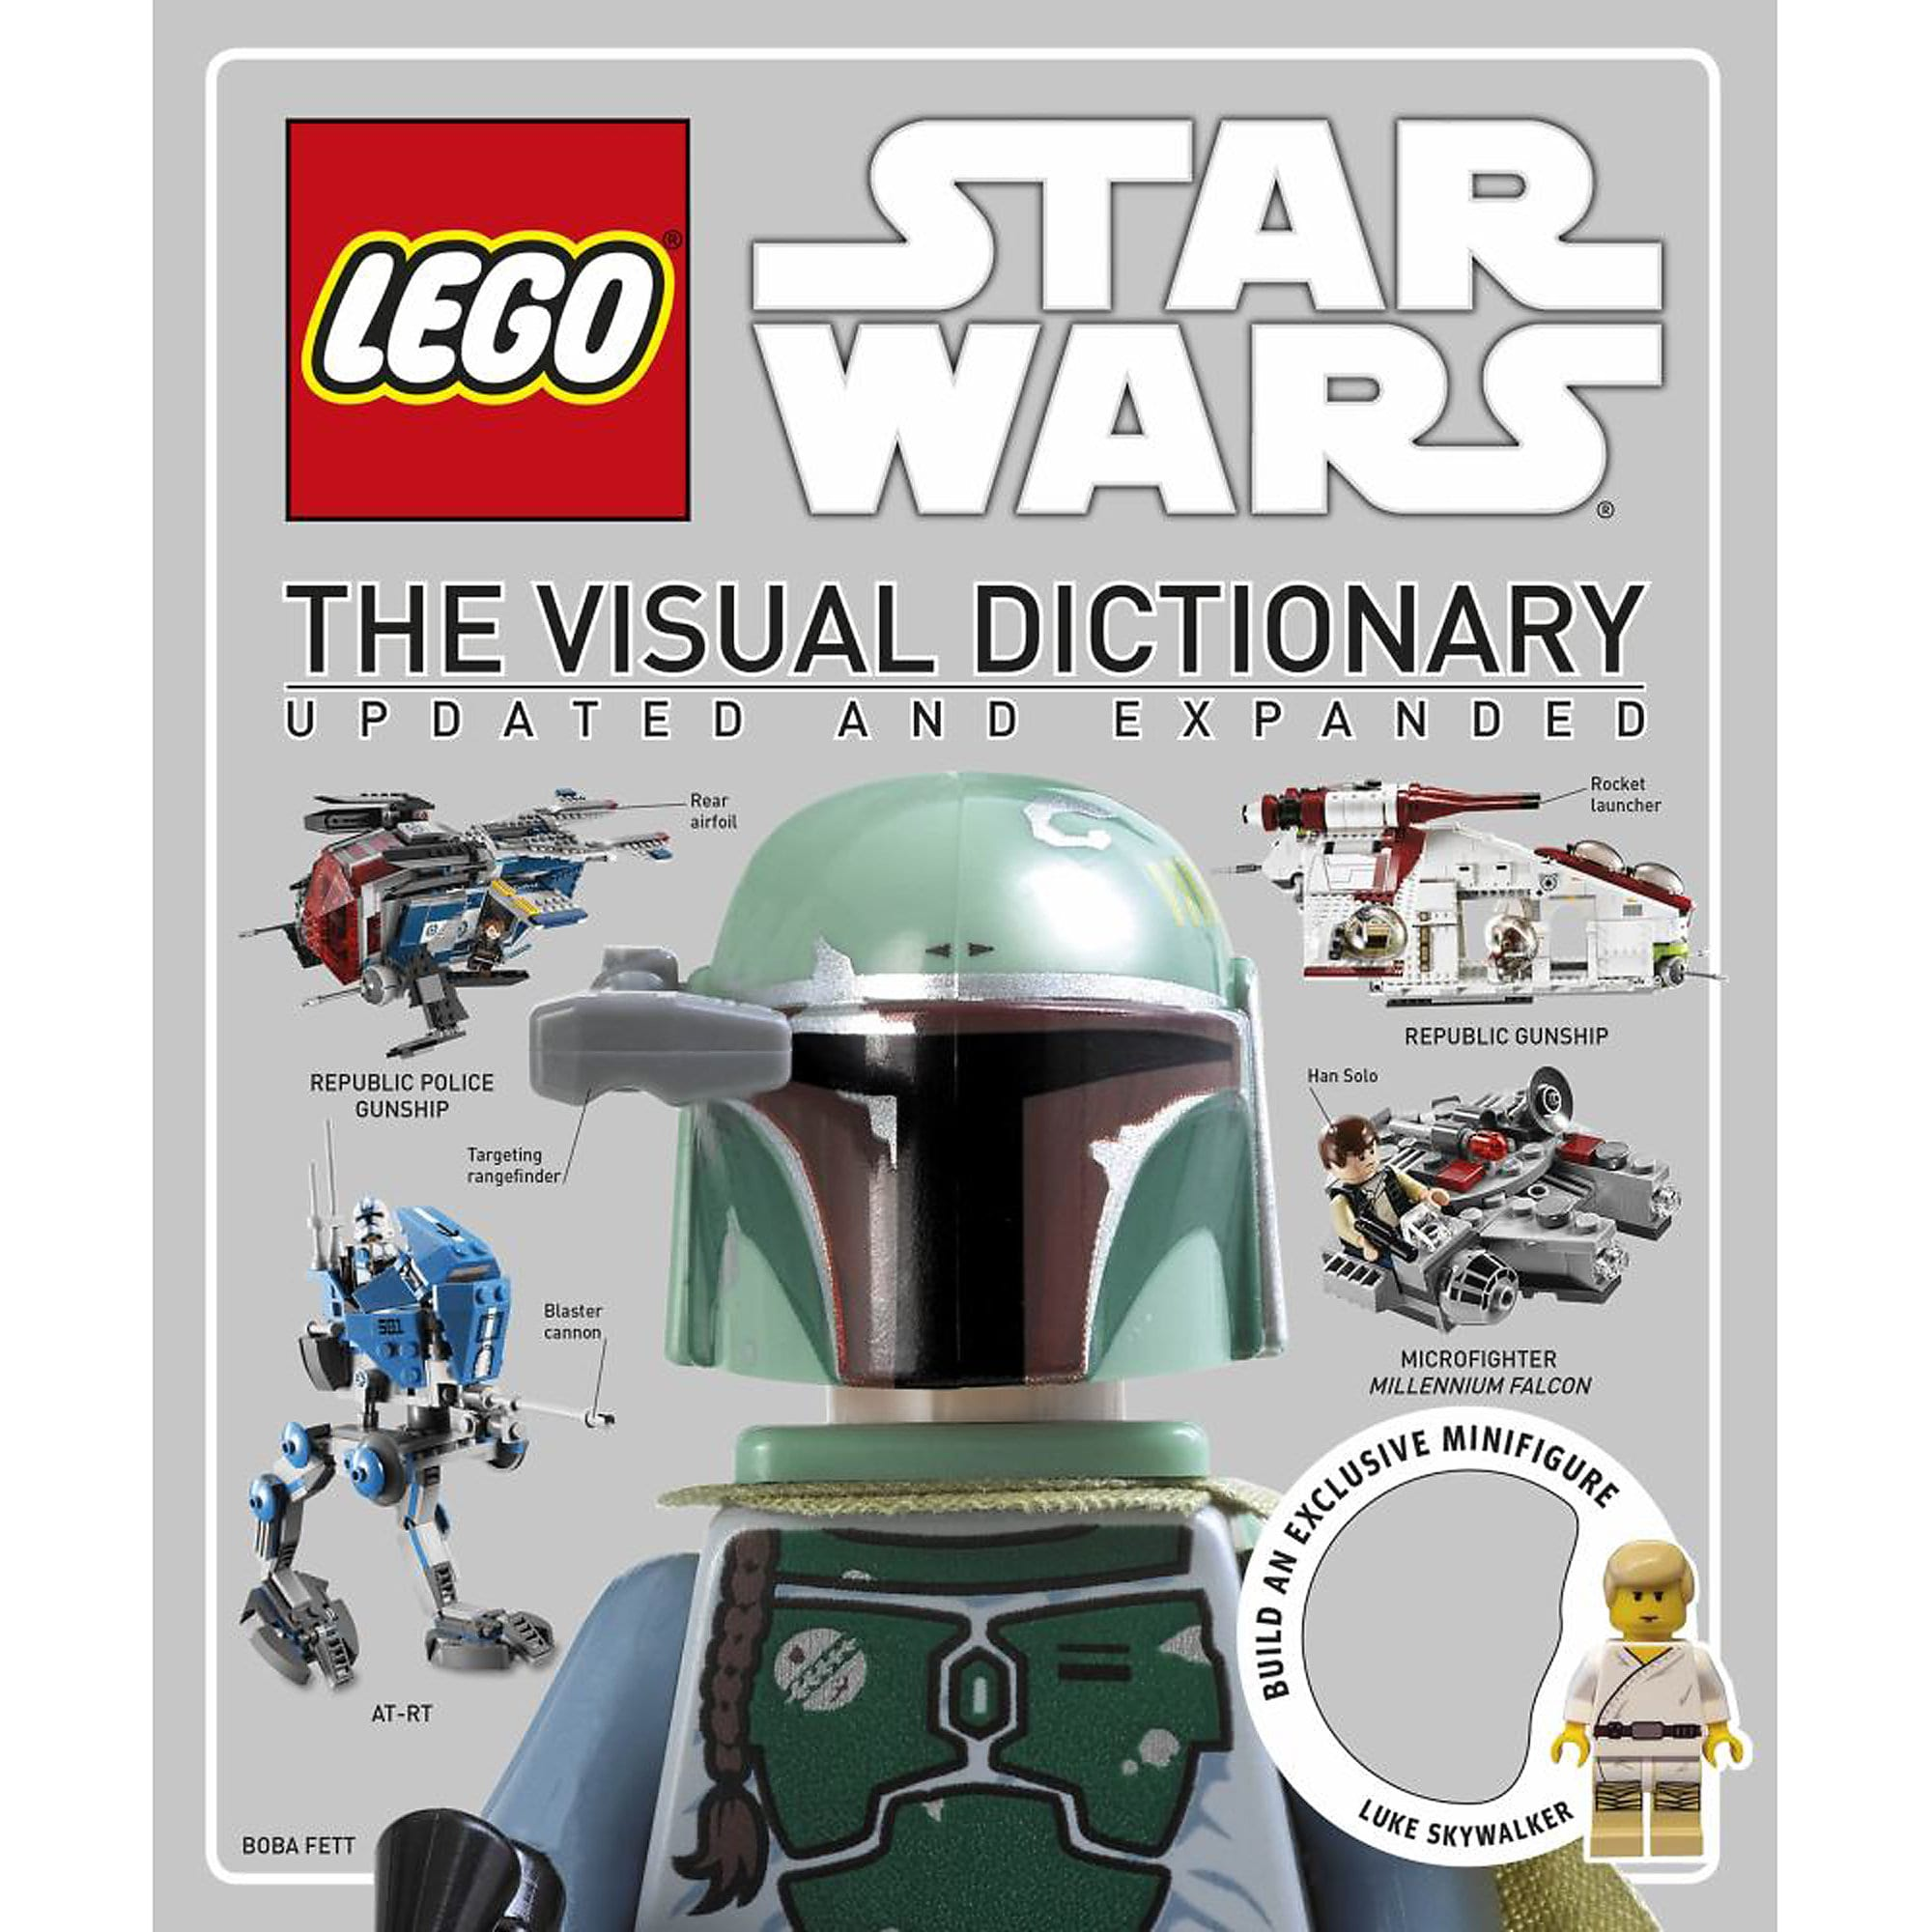 Star Wars LEGO: The Visual Dictionary Book